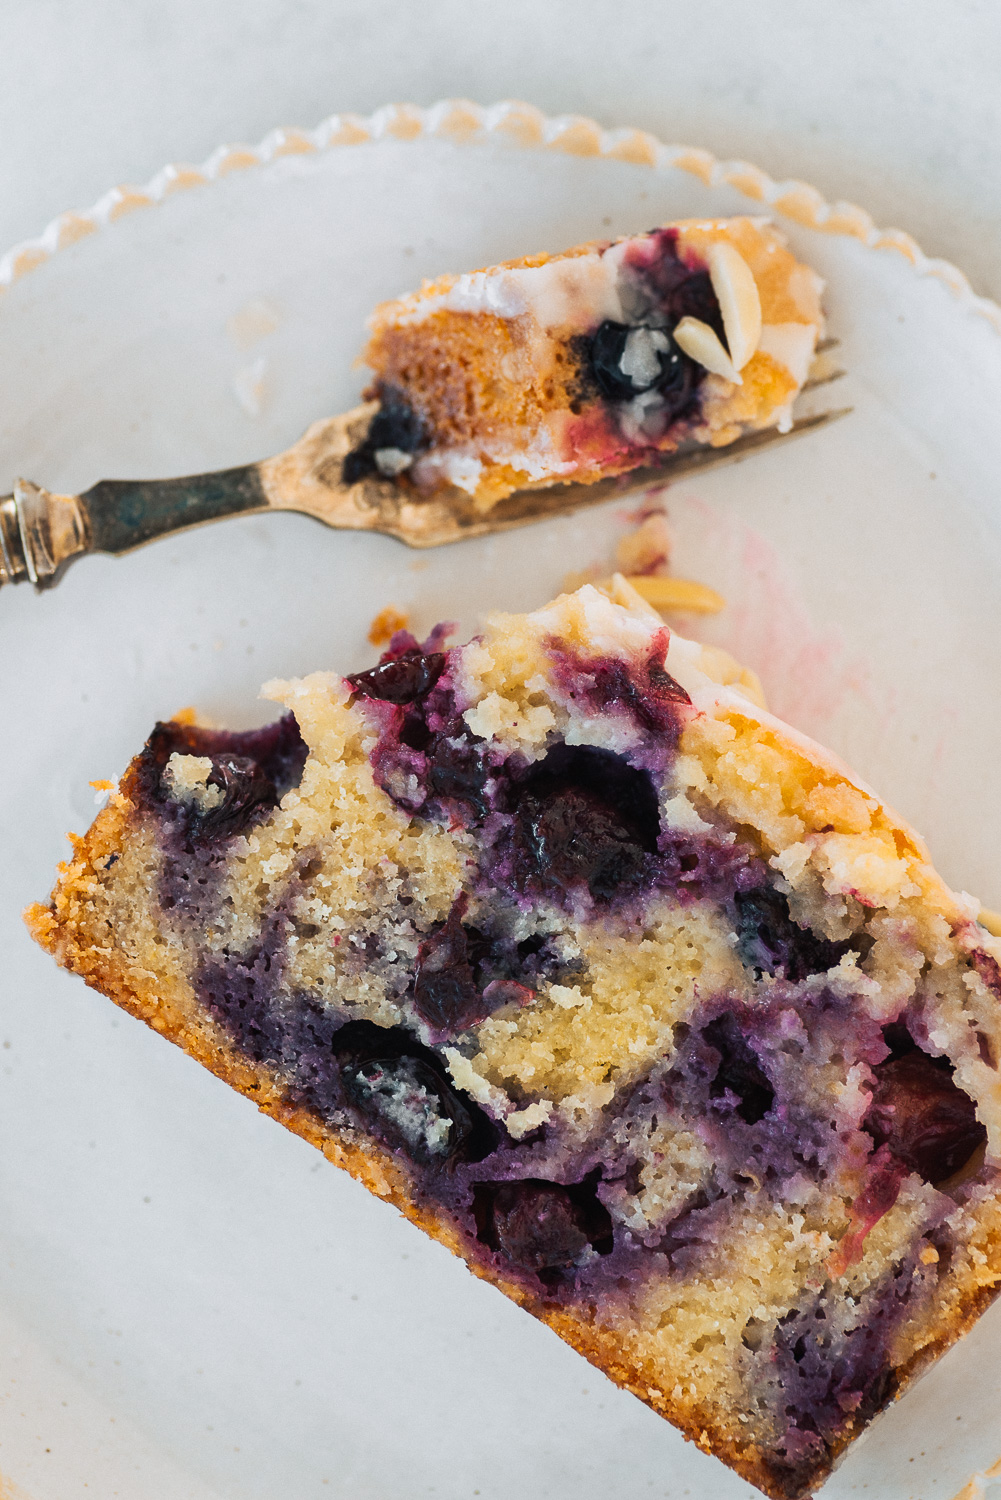 Blueberry, Almond and Lemon Cake from Yotam Ottolenghi's cookbook SIMPLE | Mondomulia